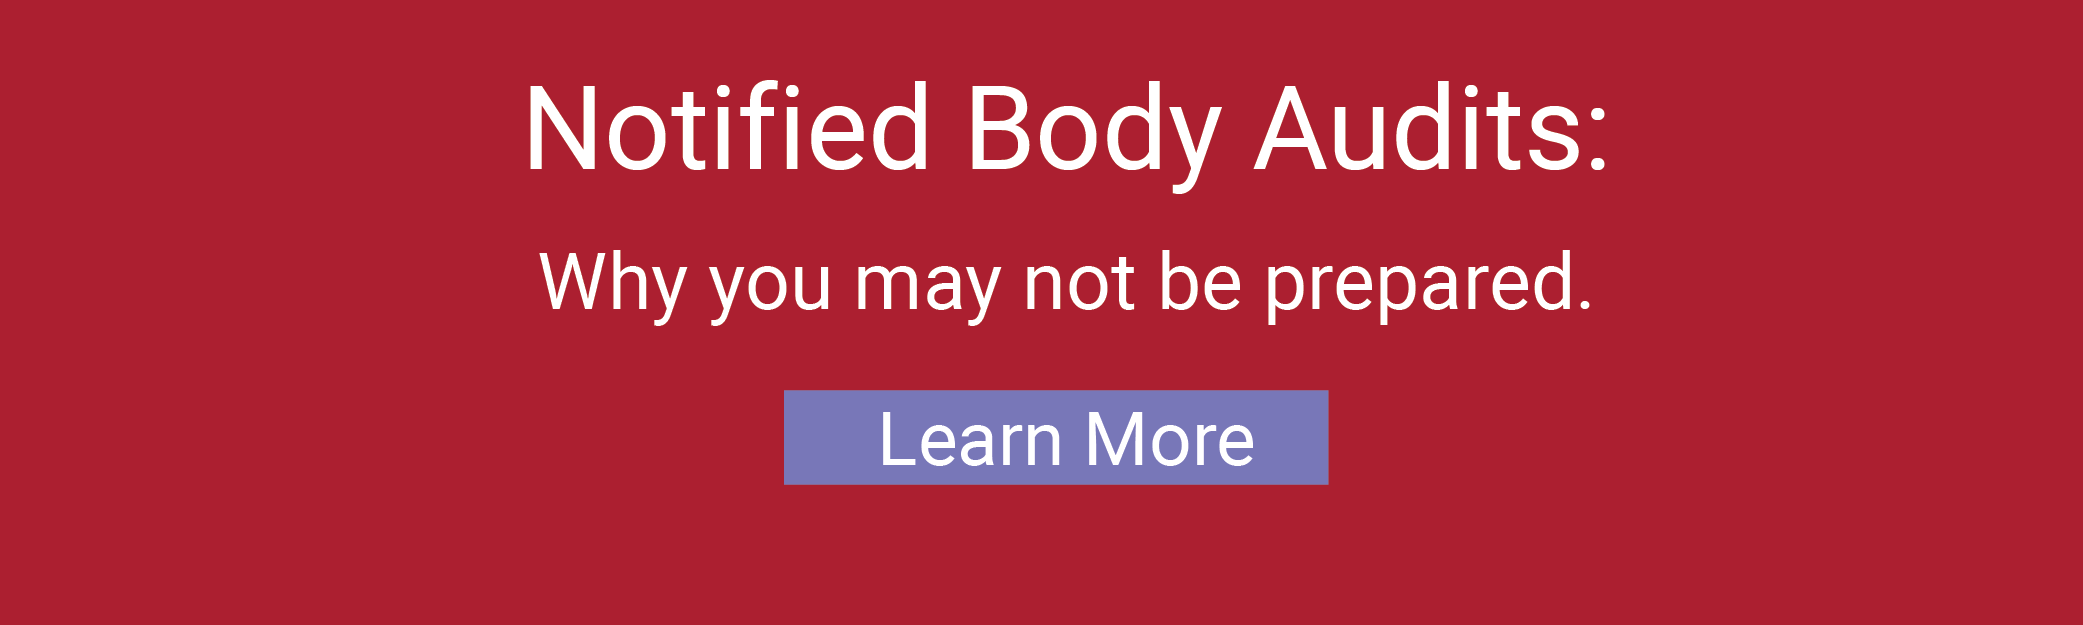 notified-body-audits